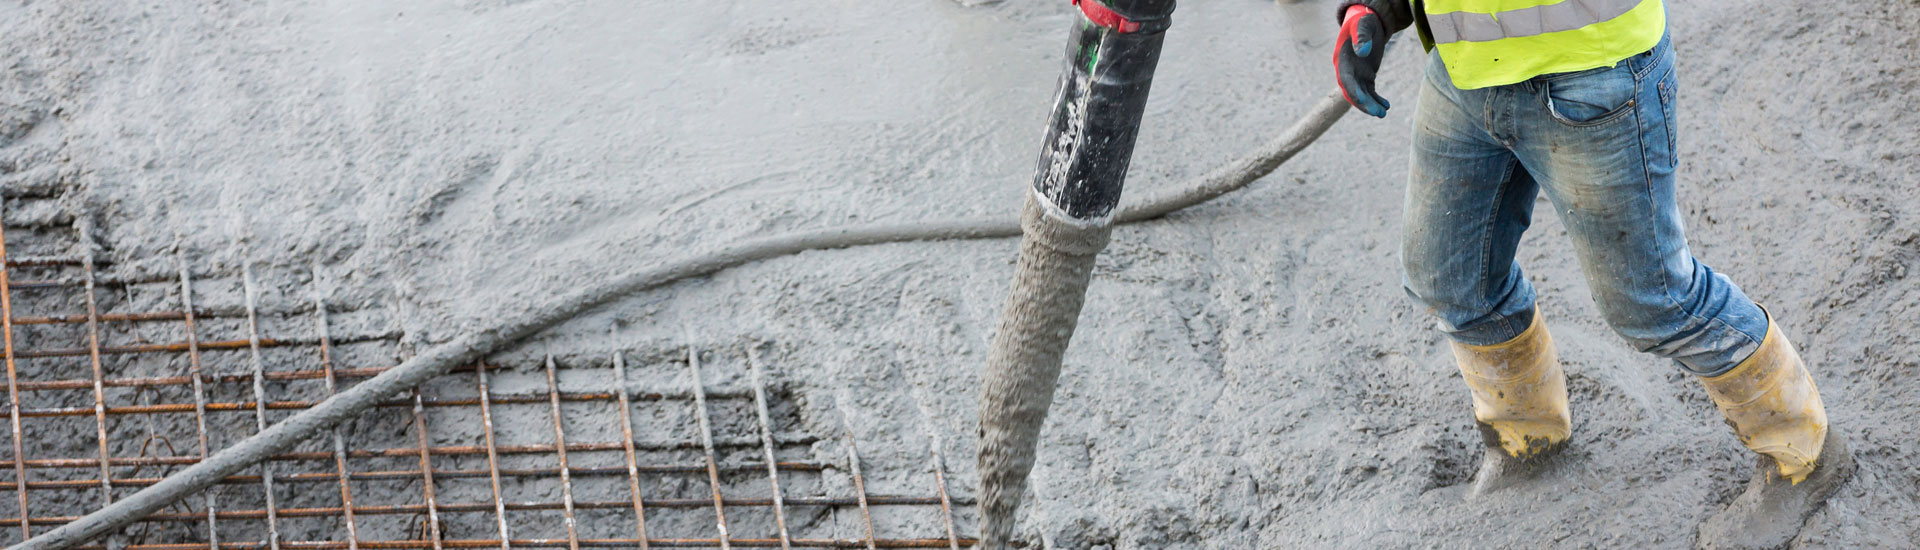 Worker Pouring Concrete with Pump Tube